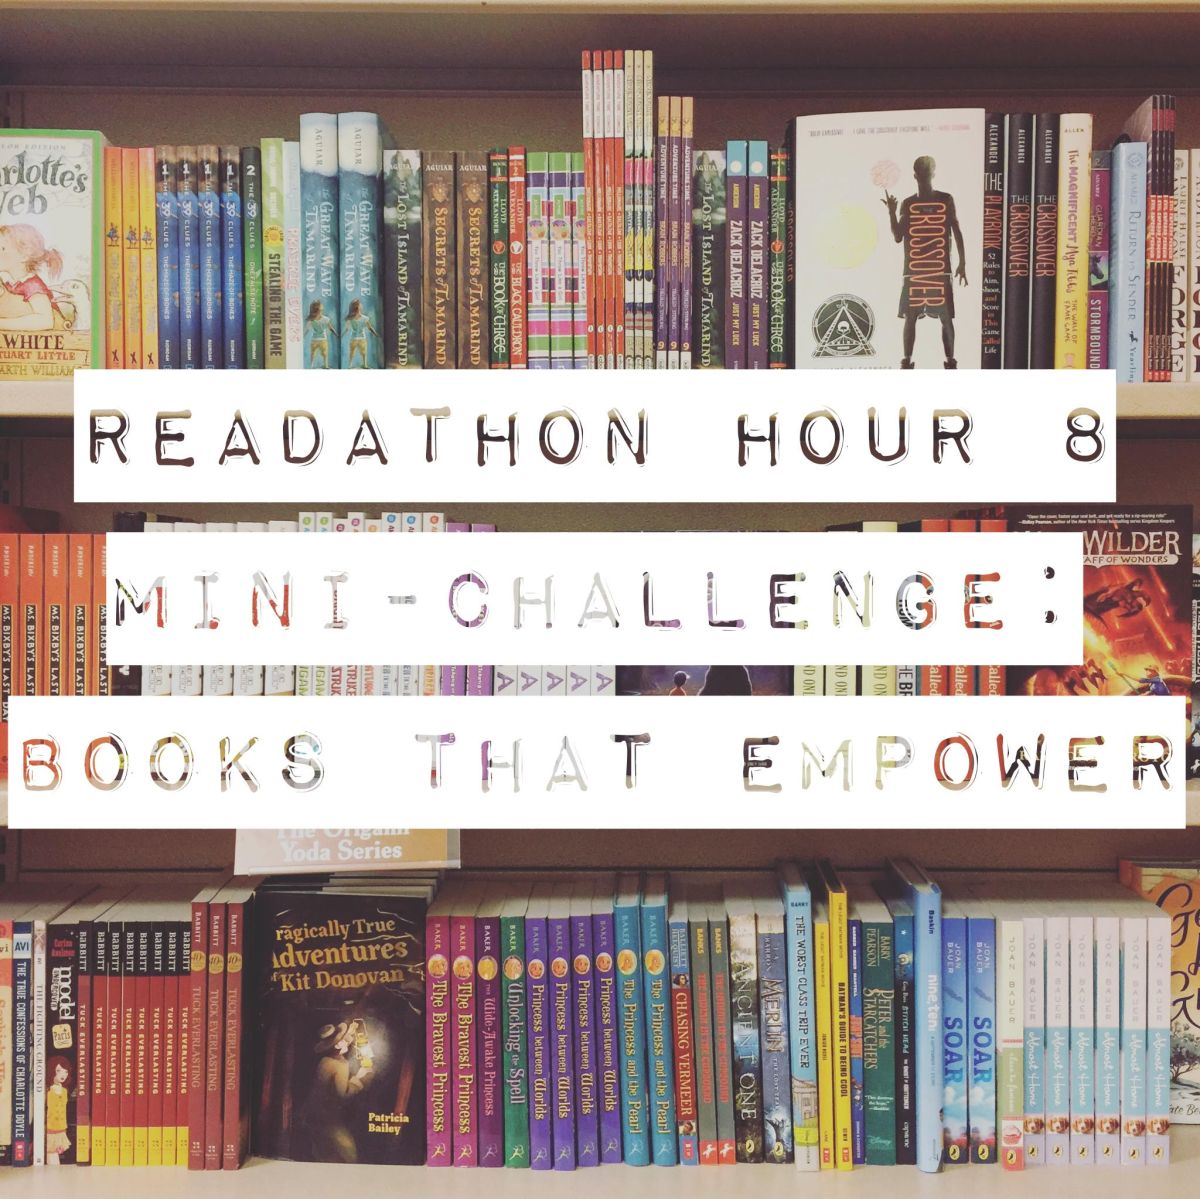 Readathon Hour 8 Mini-Challenge: Books to Empower